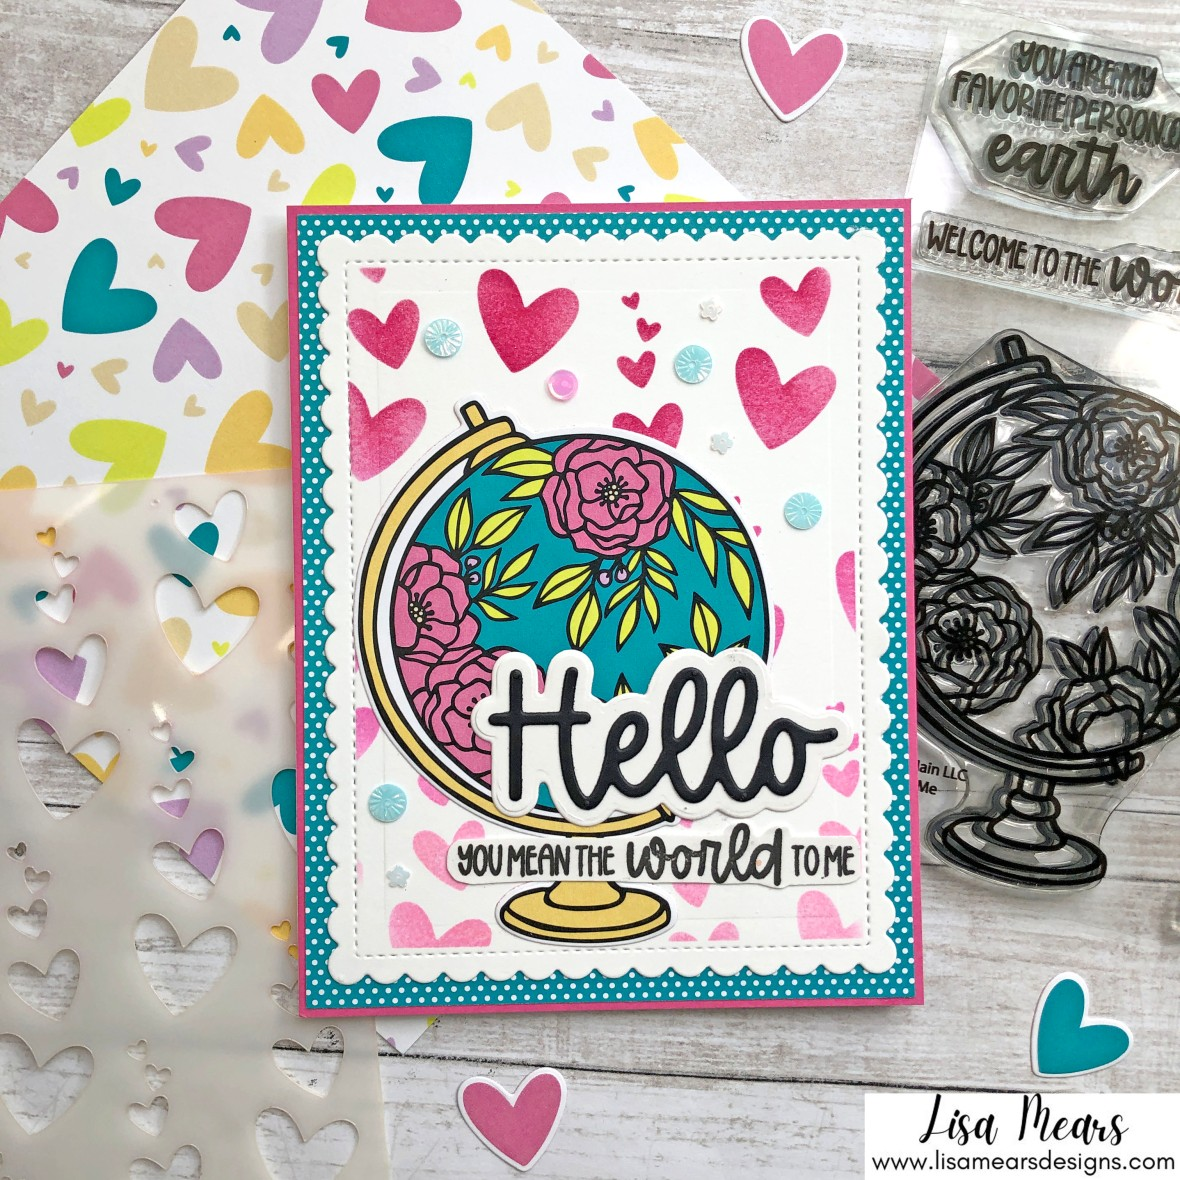 Pink and Main August 2021 Card Kit - 10 Cards 1 Kit - Lisa Mears Designs